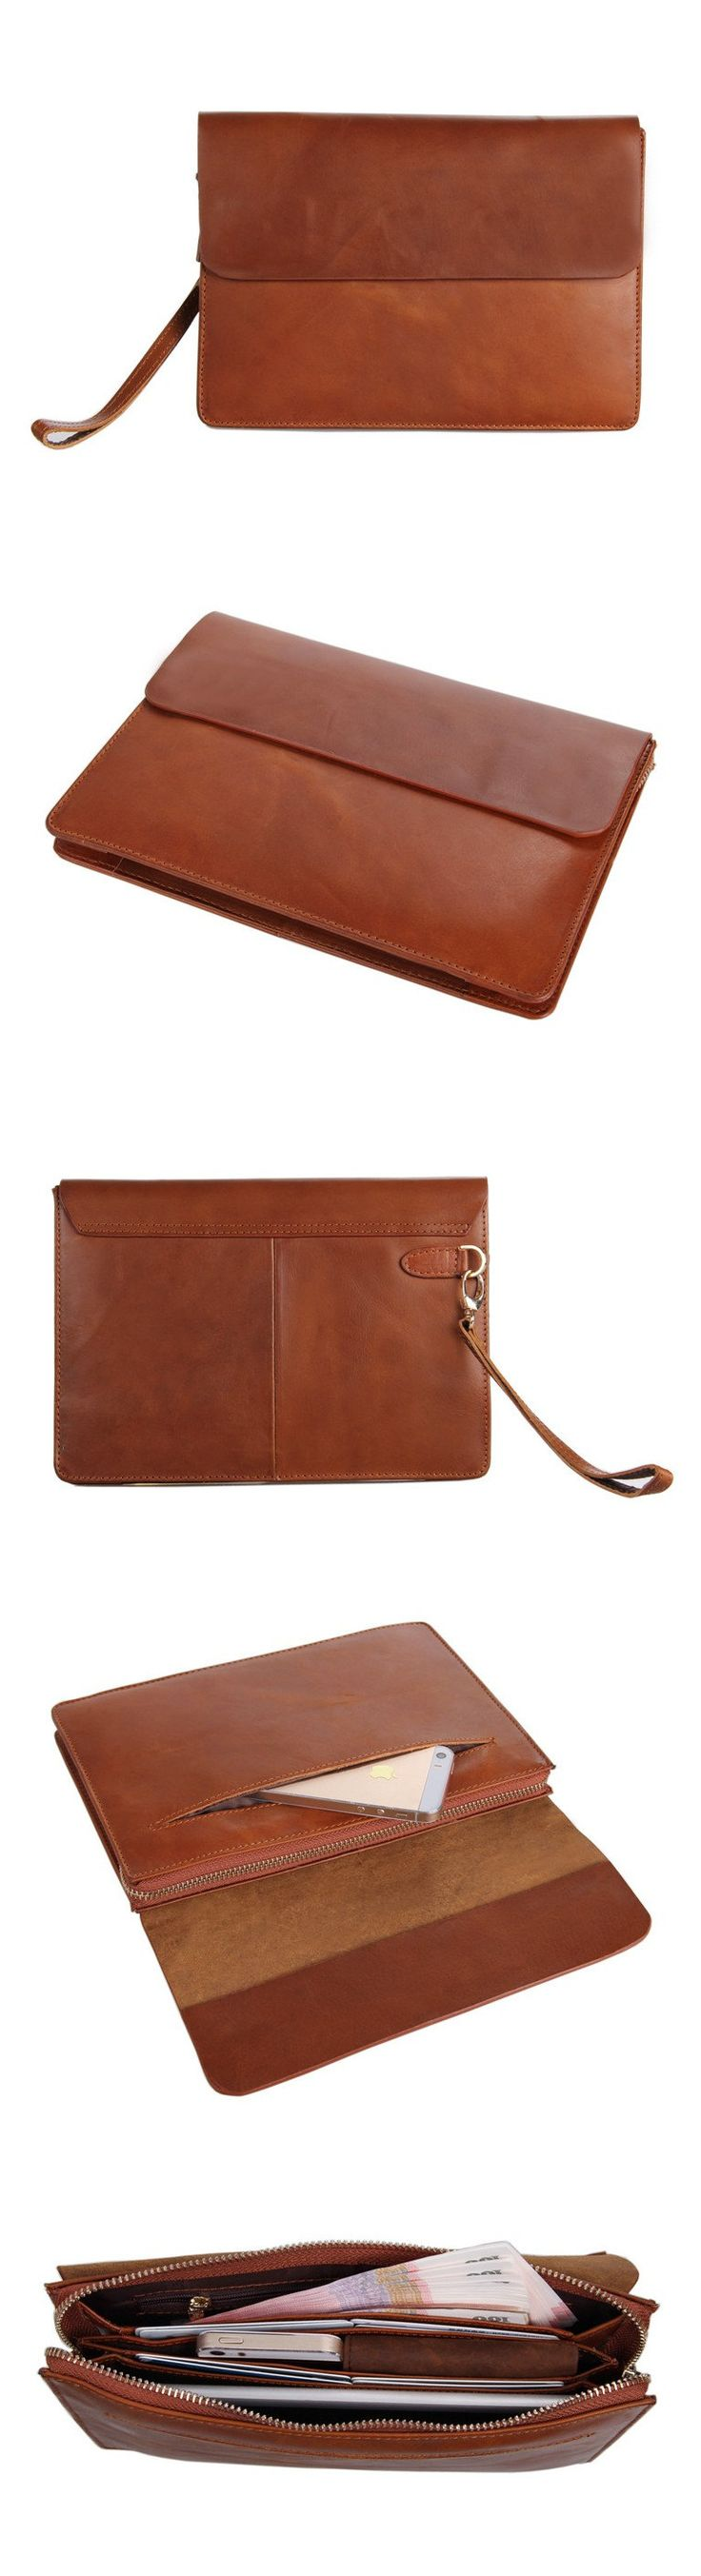 Genuine Leather Men Clutch Bag / Leather Wallet